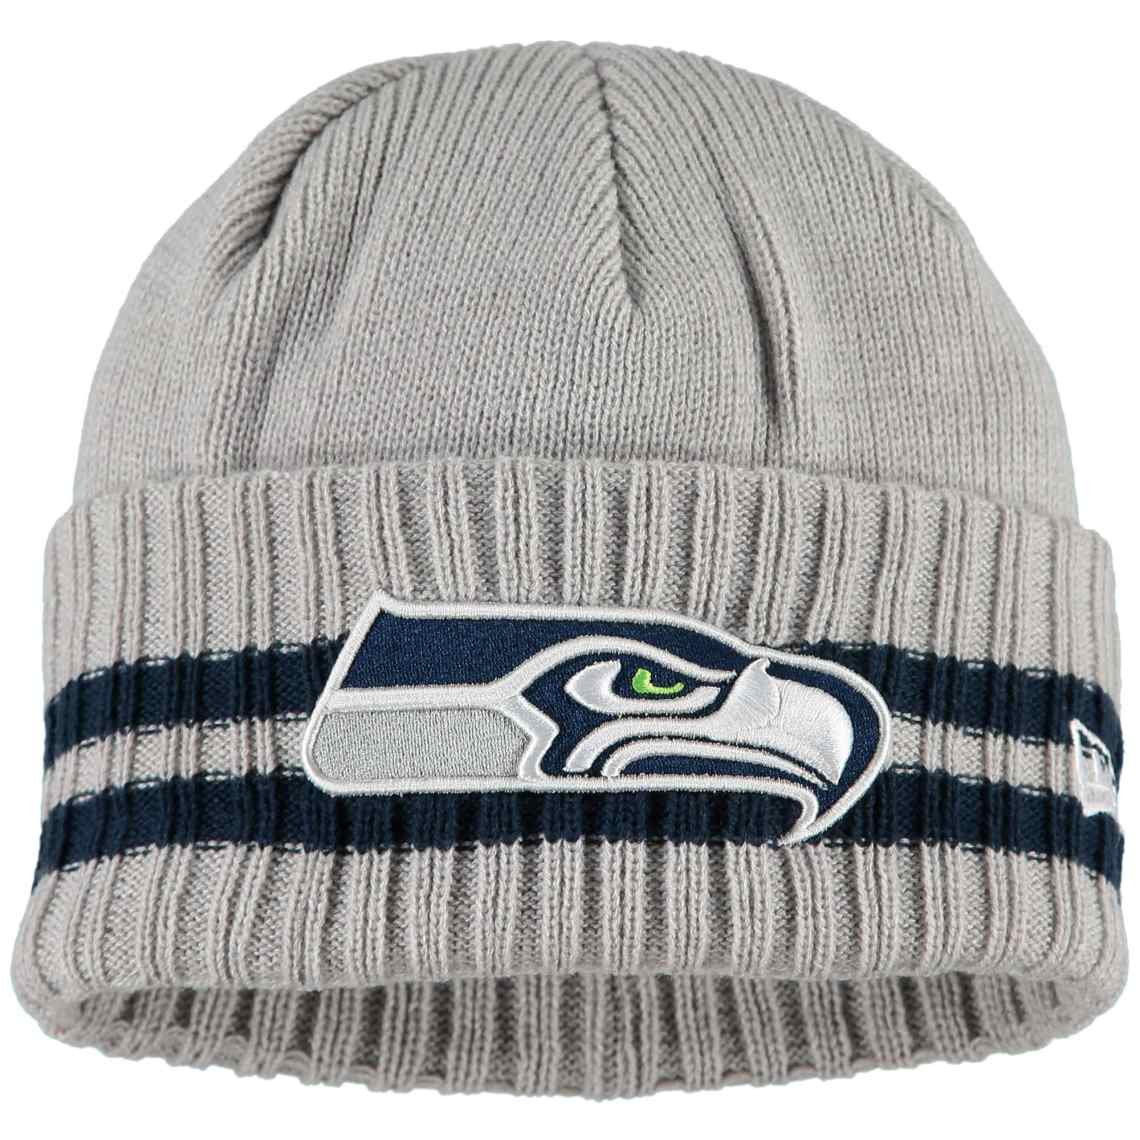 Seattle Seahawks New Era 2 Striped Cuffed Knit Hat - Heathered Gray